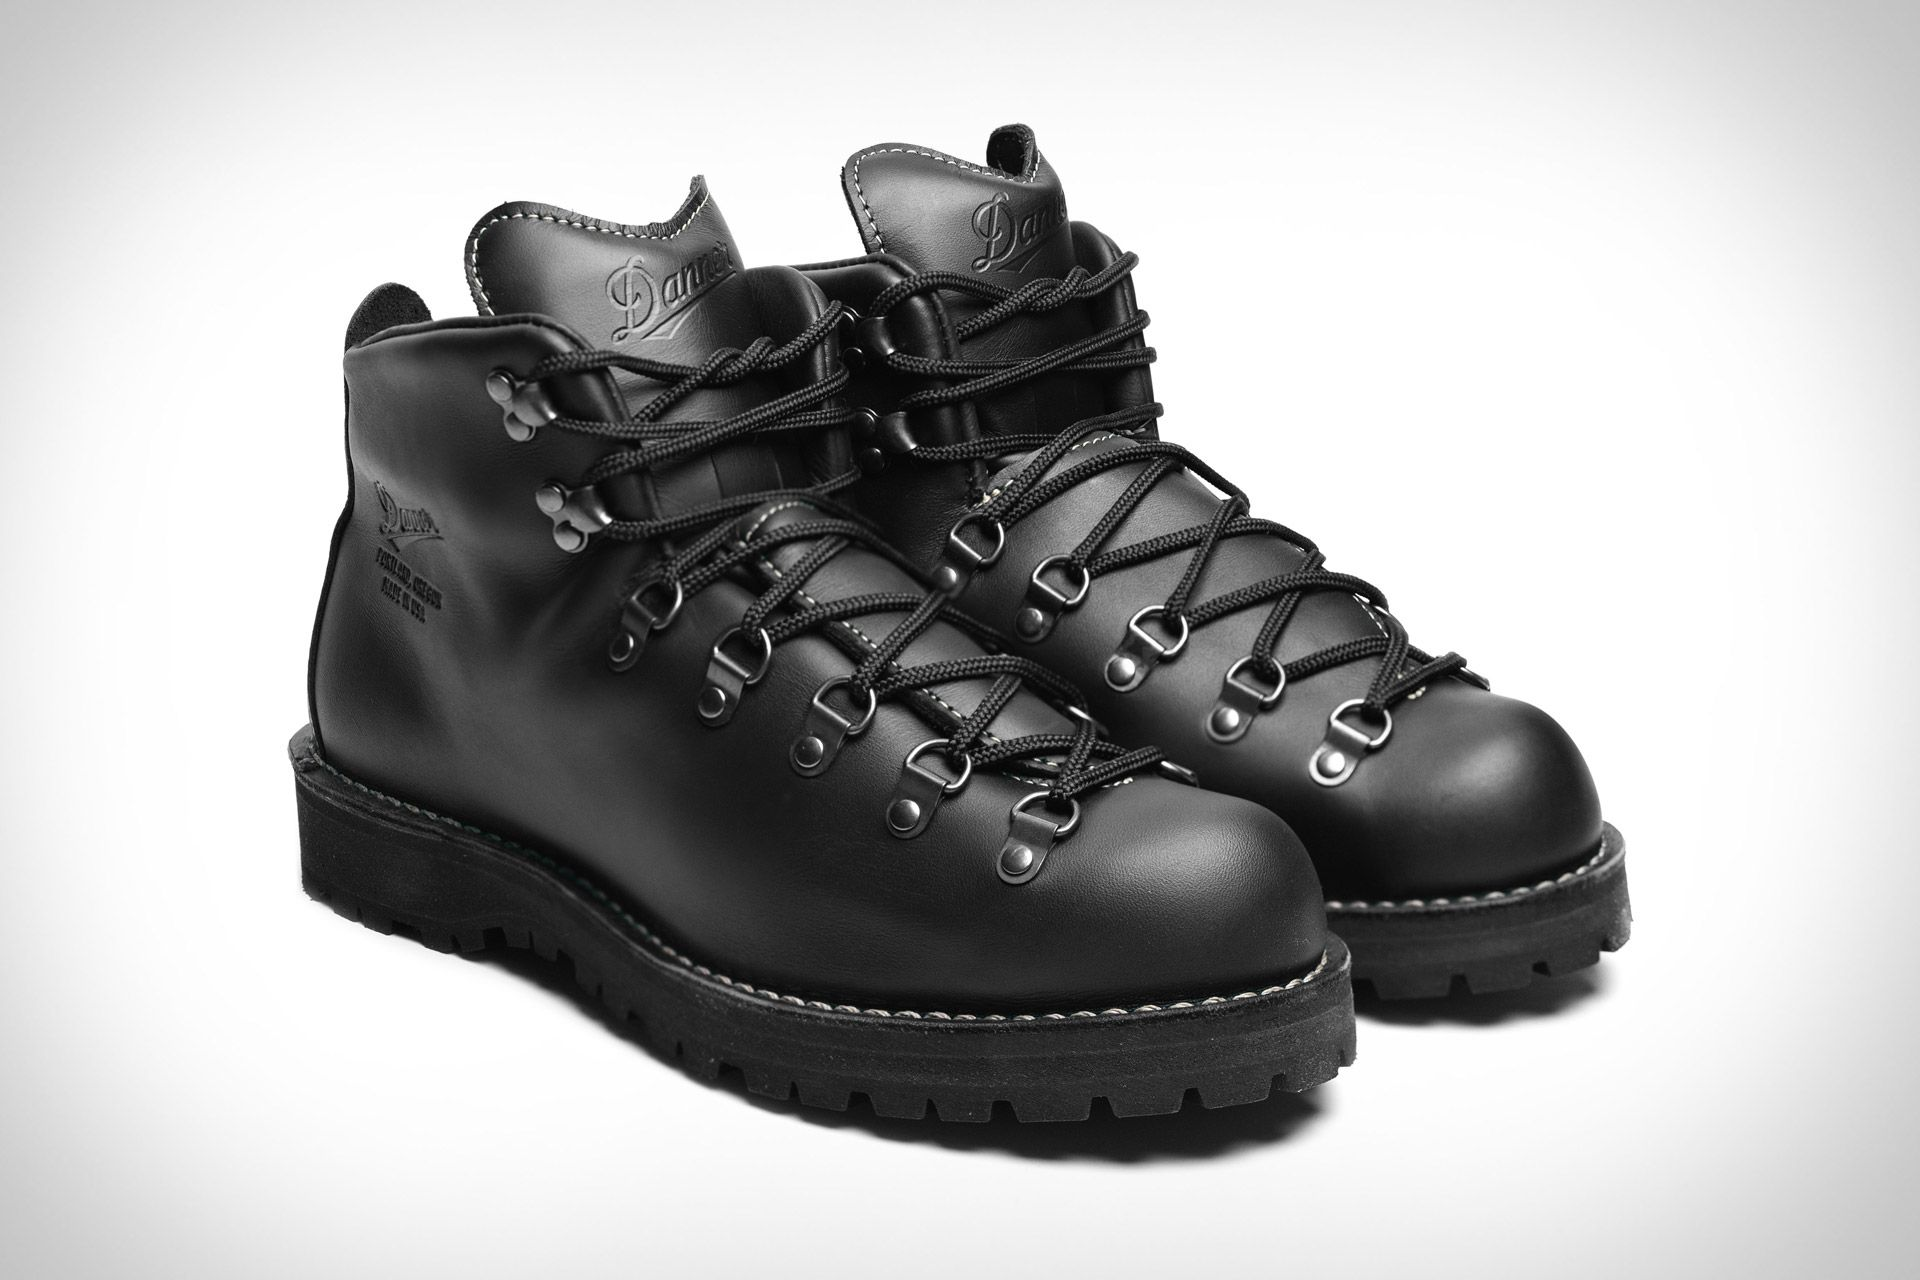 fa5c71ee86b Danner Mountain Light II Bond Boot | Shoes | Boots, Hiking boots ...